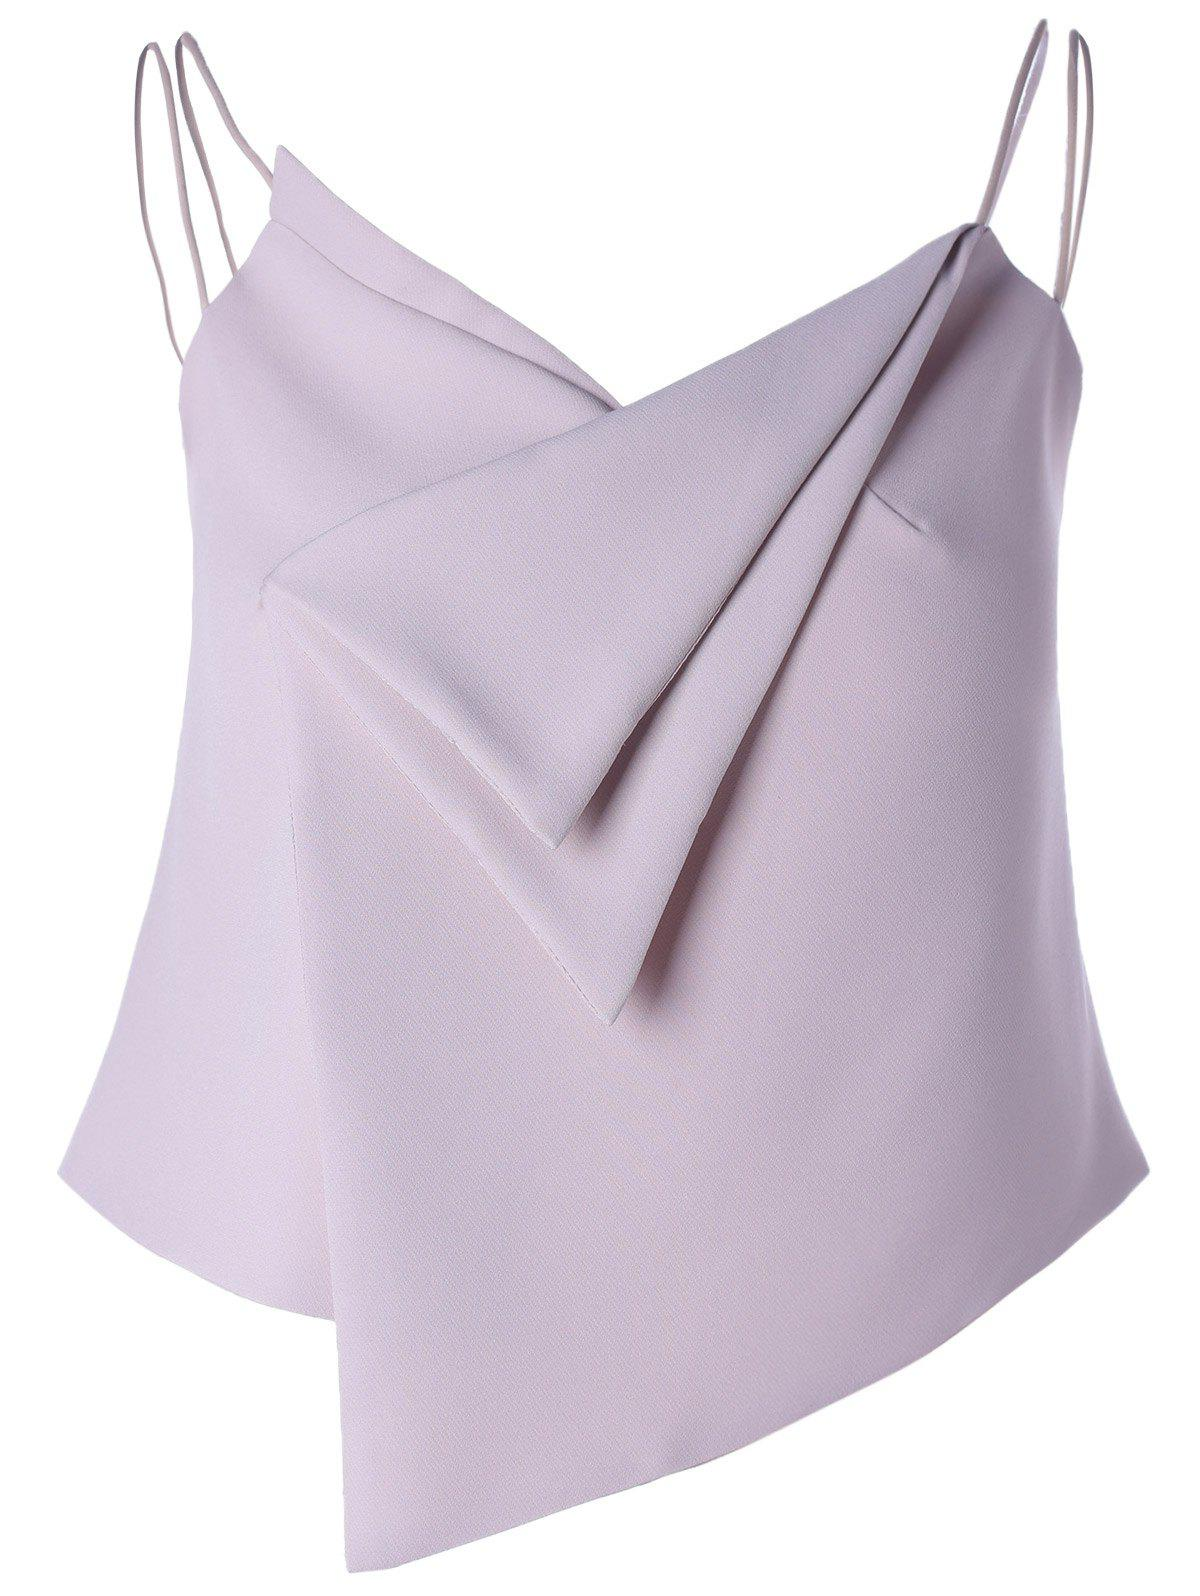 Stylish Women's V-Neck Spaghetti Strap Solid Color Asymmetric Crop Top - PALE PINKISH GREY M